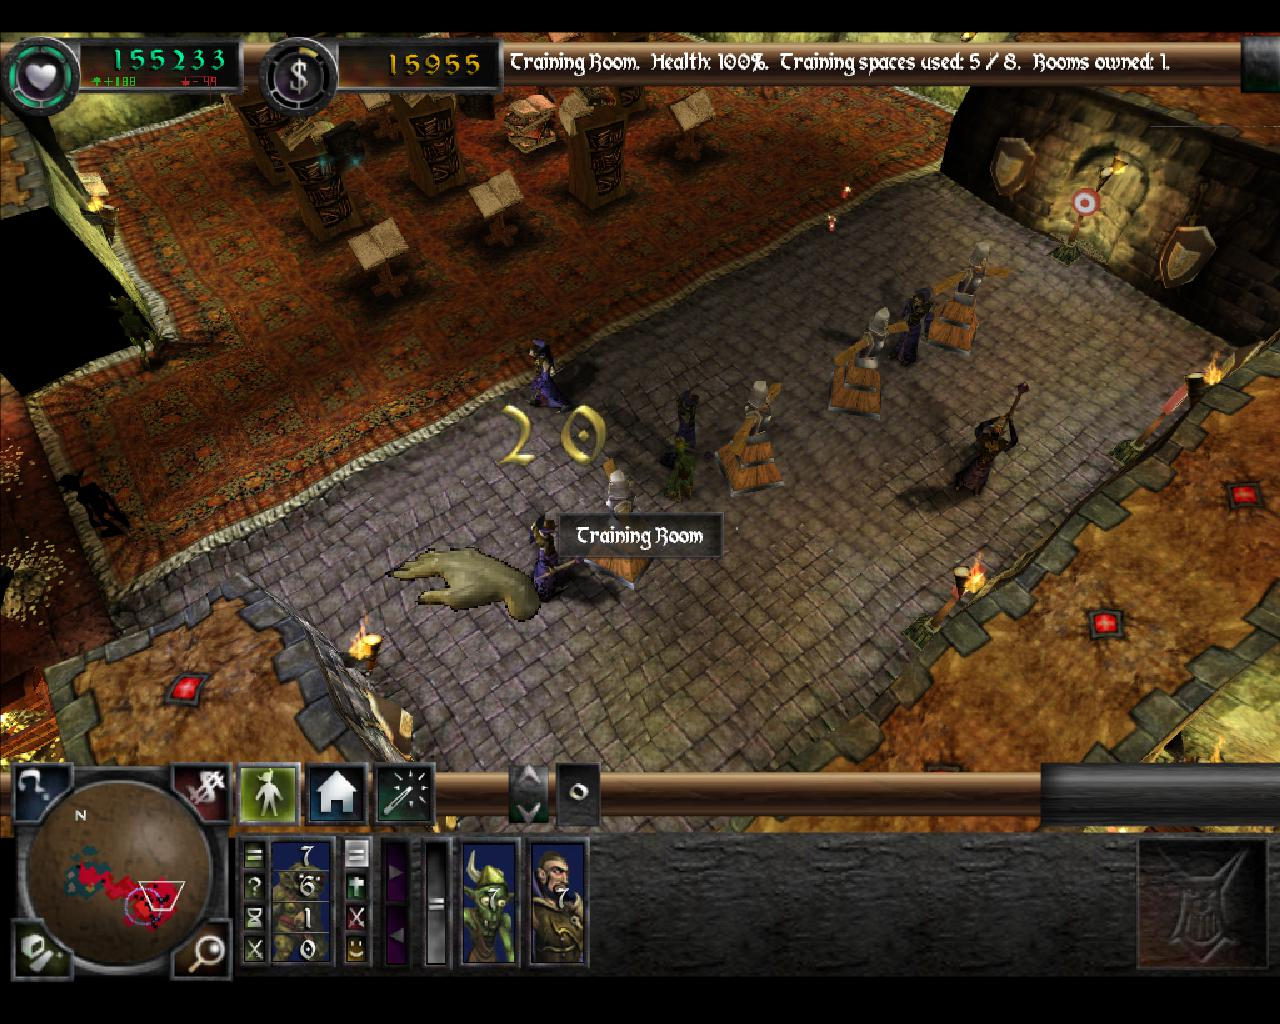 dungeon-keeper-2-screenshot2.jpg